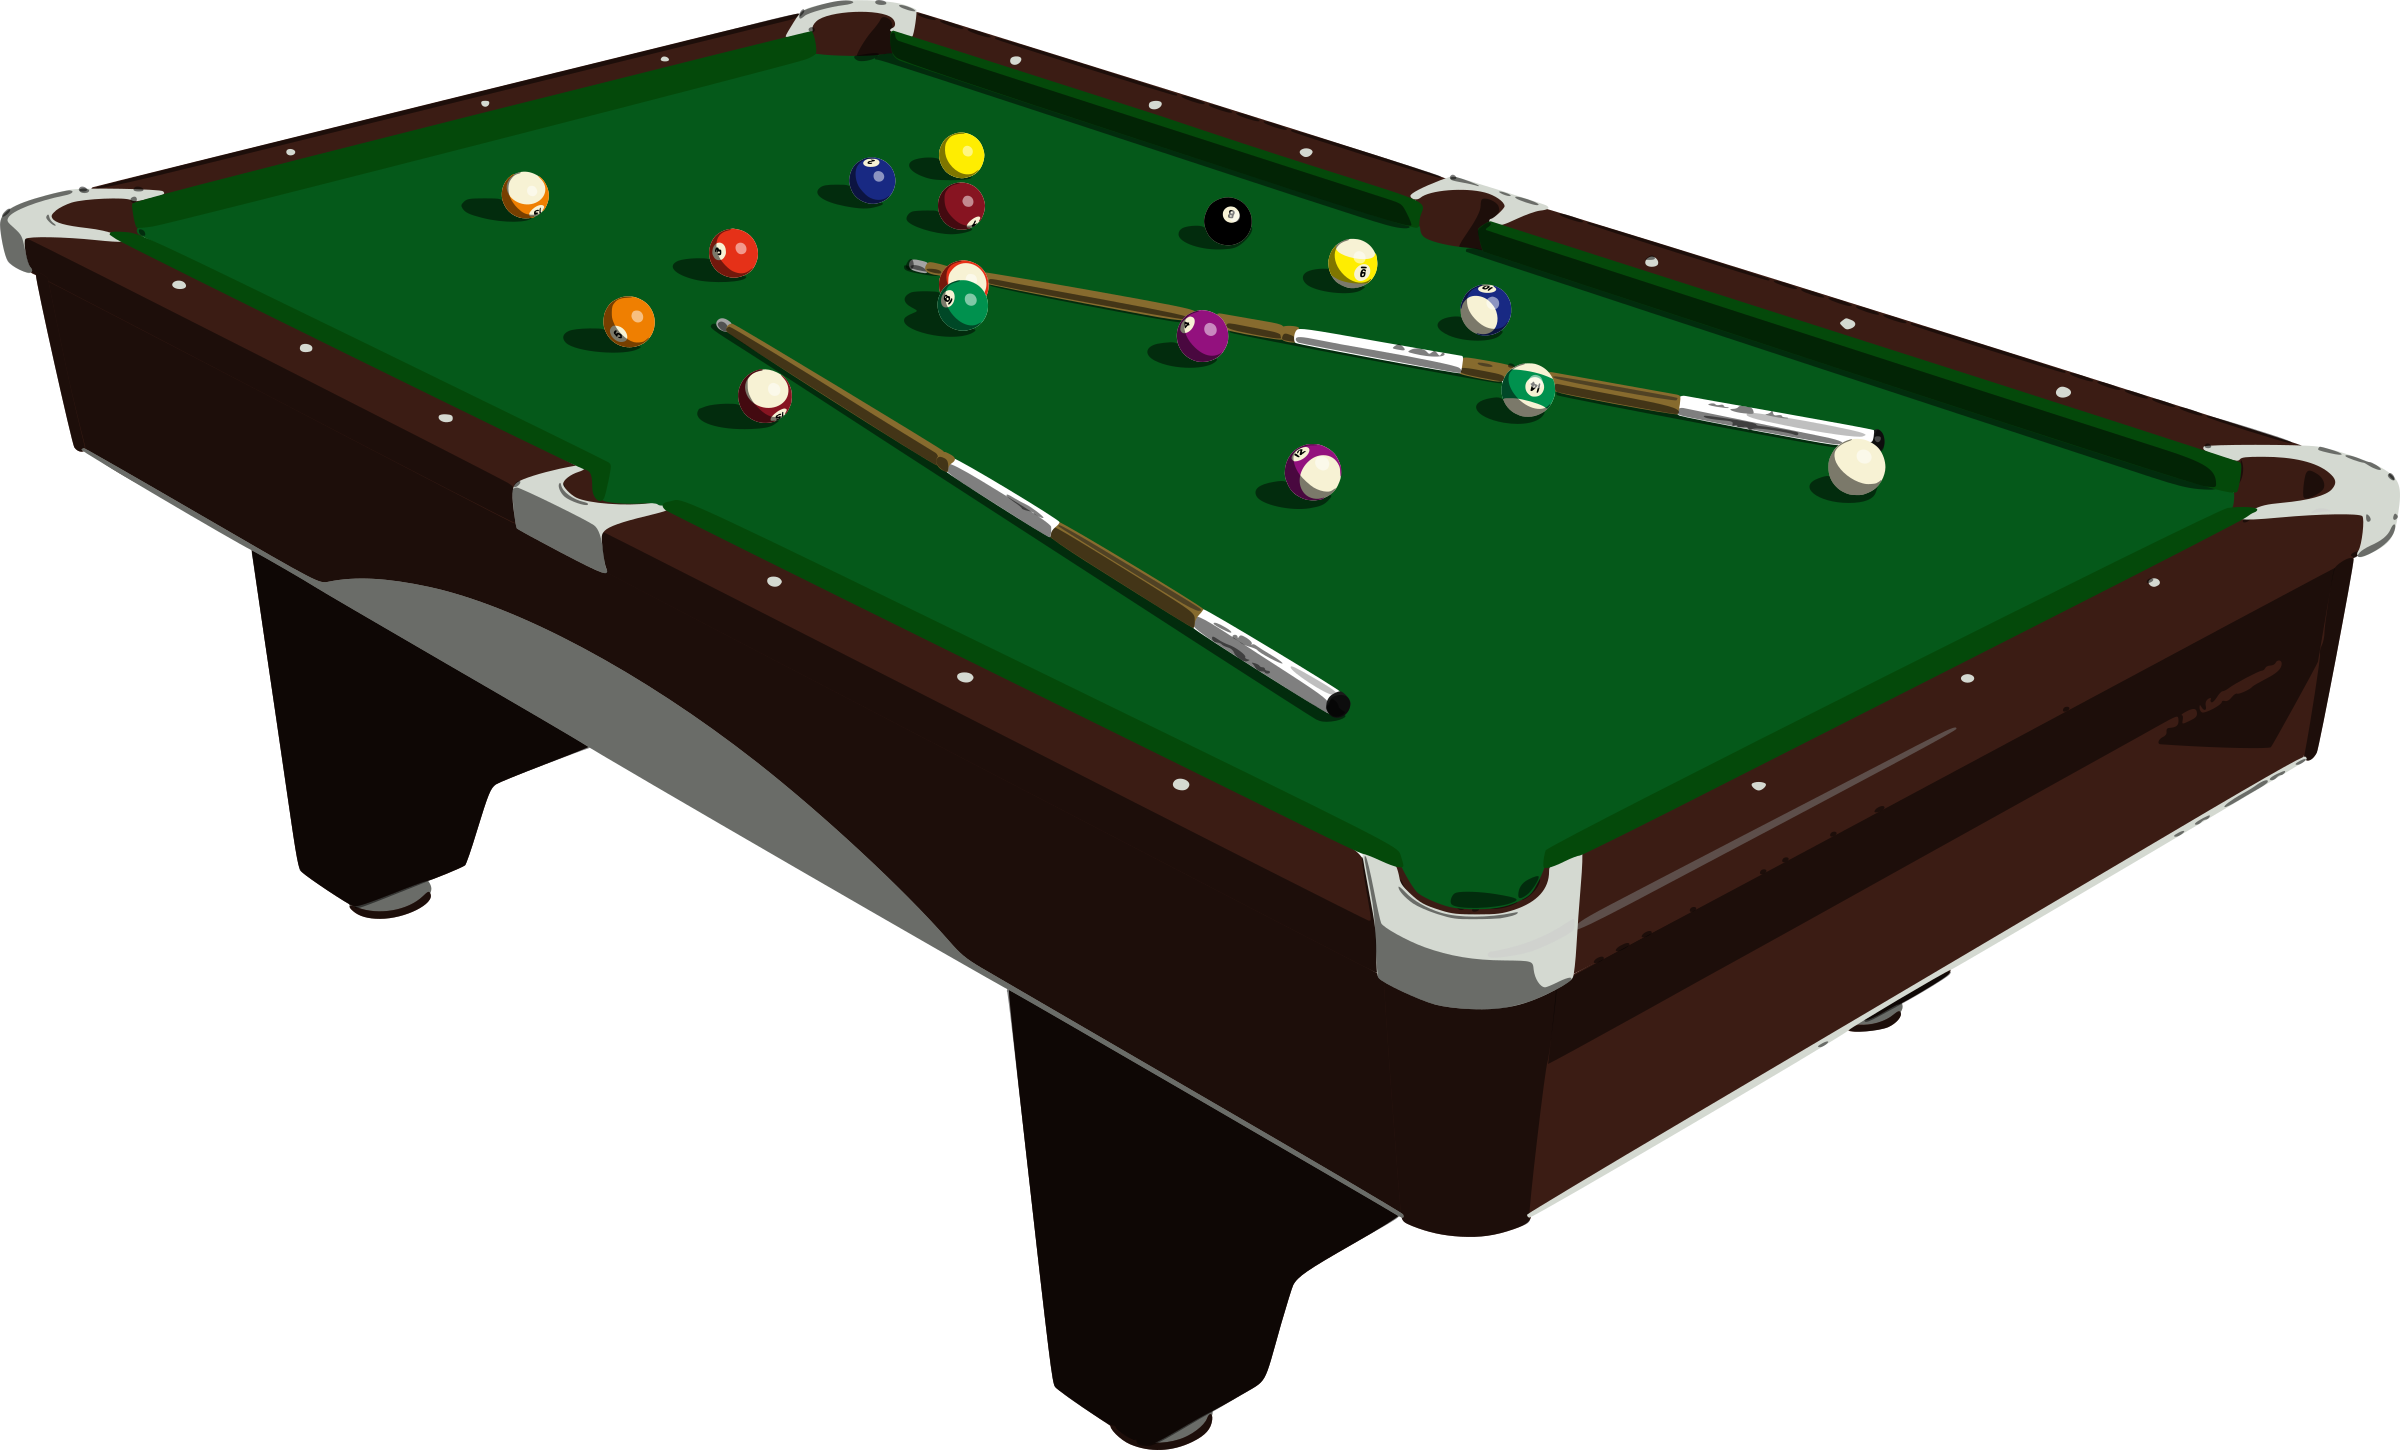 Billiards hd png transparent billiards hd png images - Pool table images ...